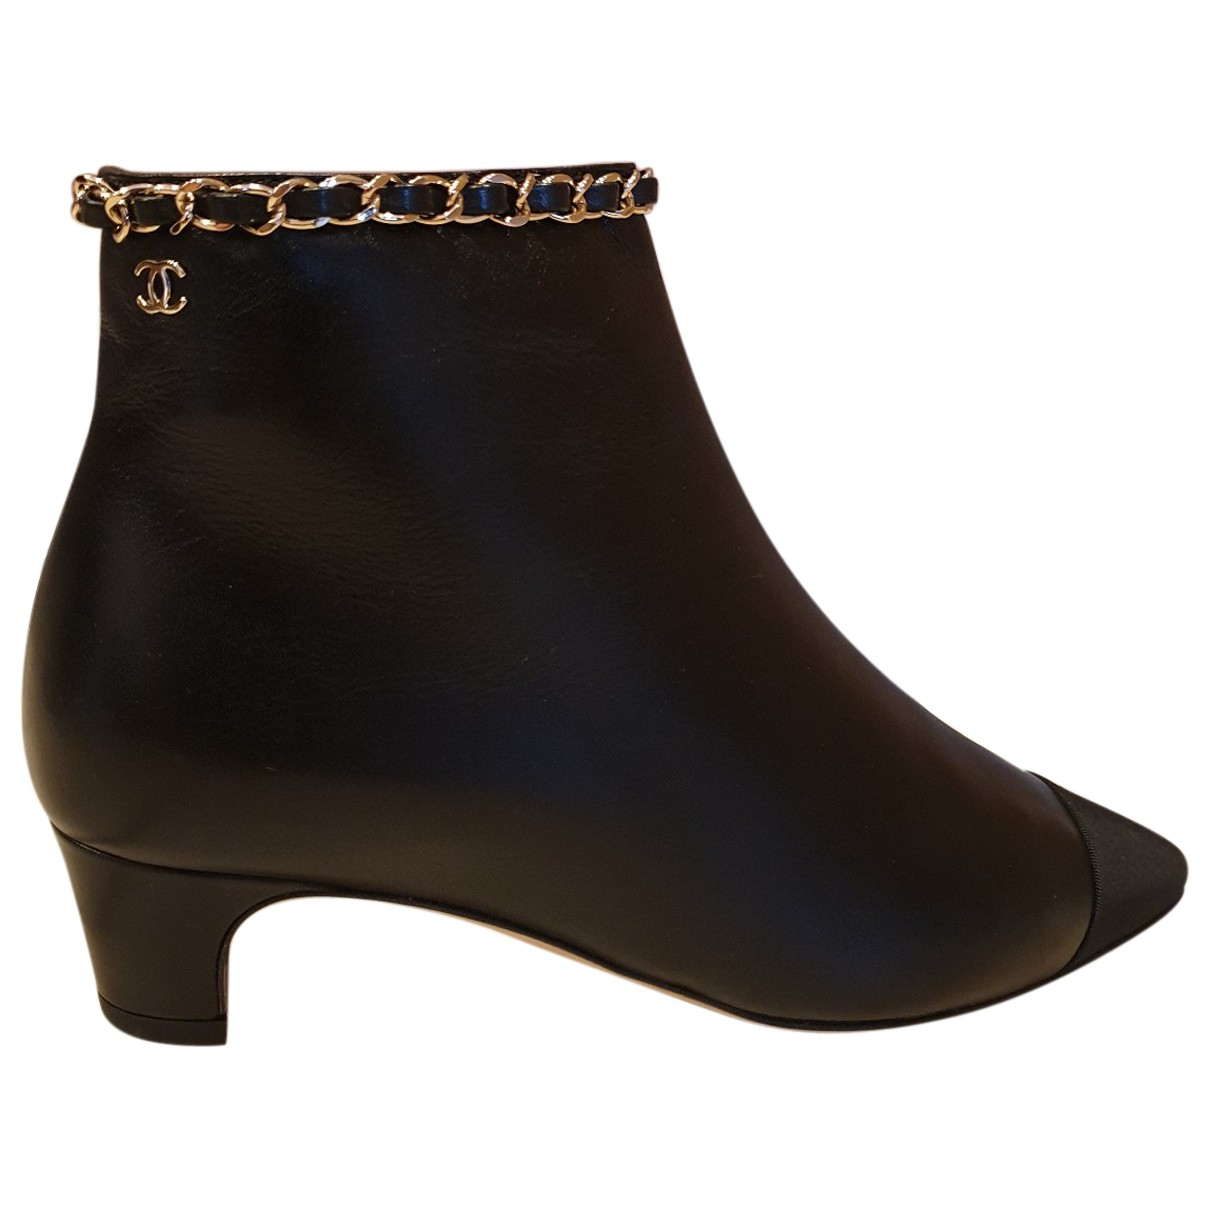 Chanel N Black Leather Boots for Women 35 IT